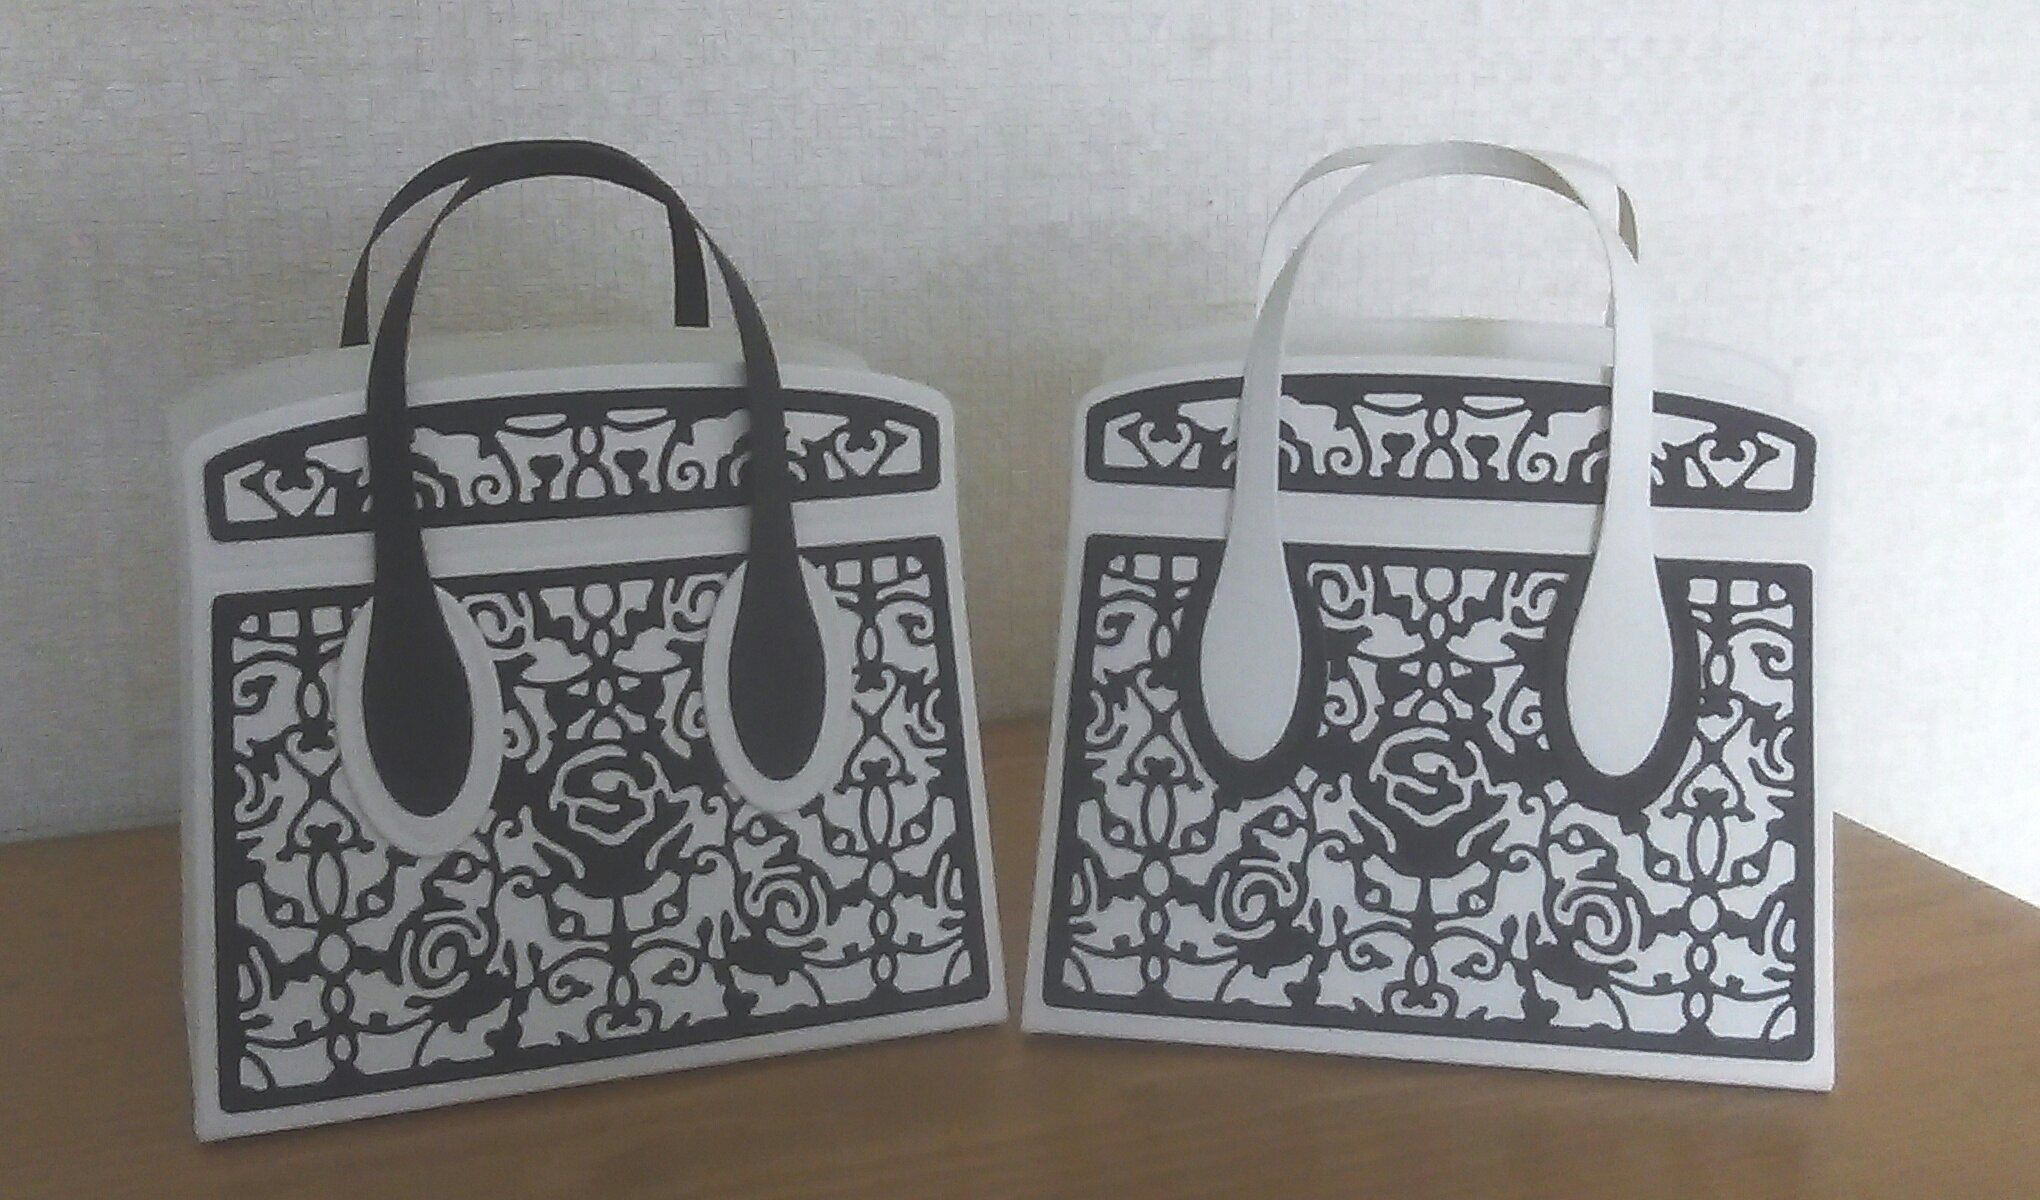 Kensington Bag | Tonic Studios die cut cards | Pinterest | Paper ...